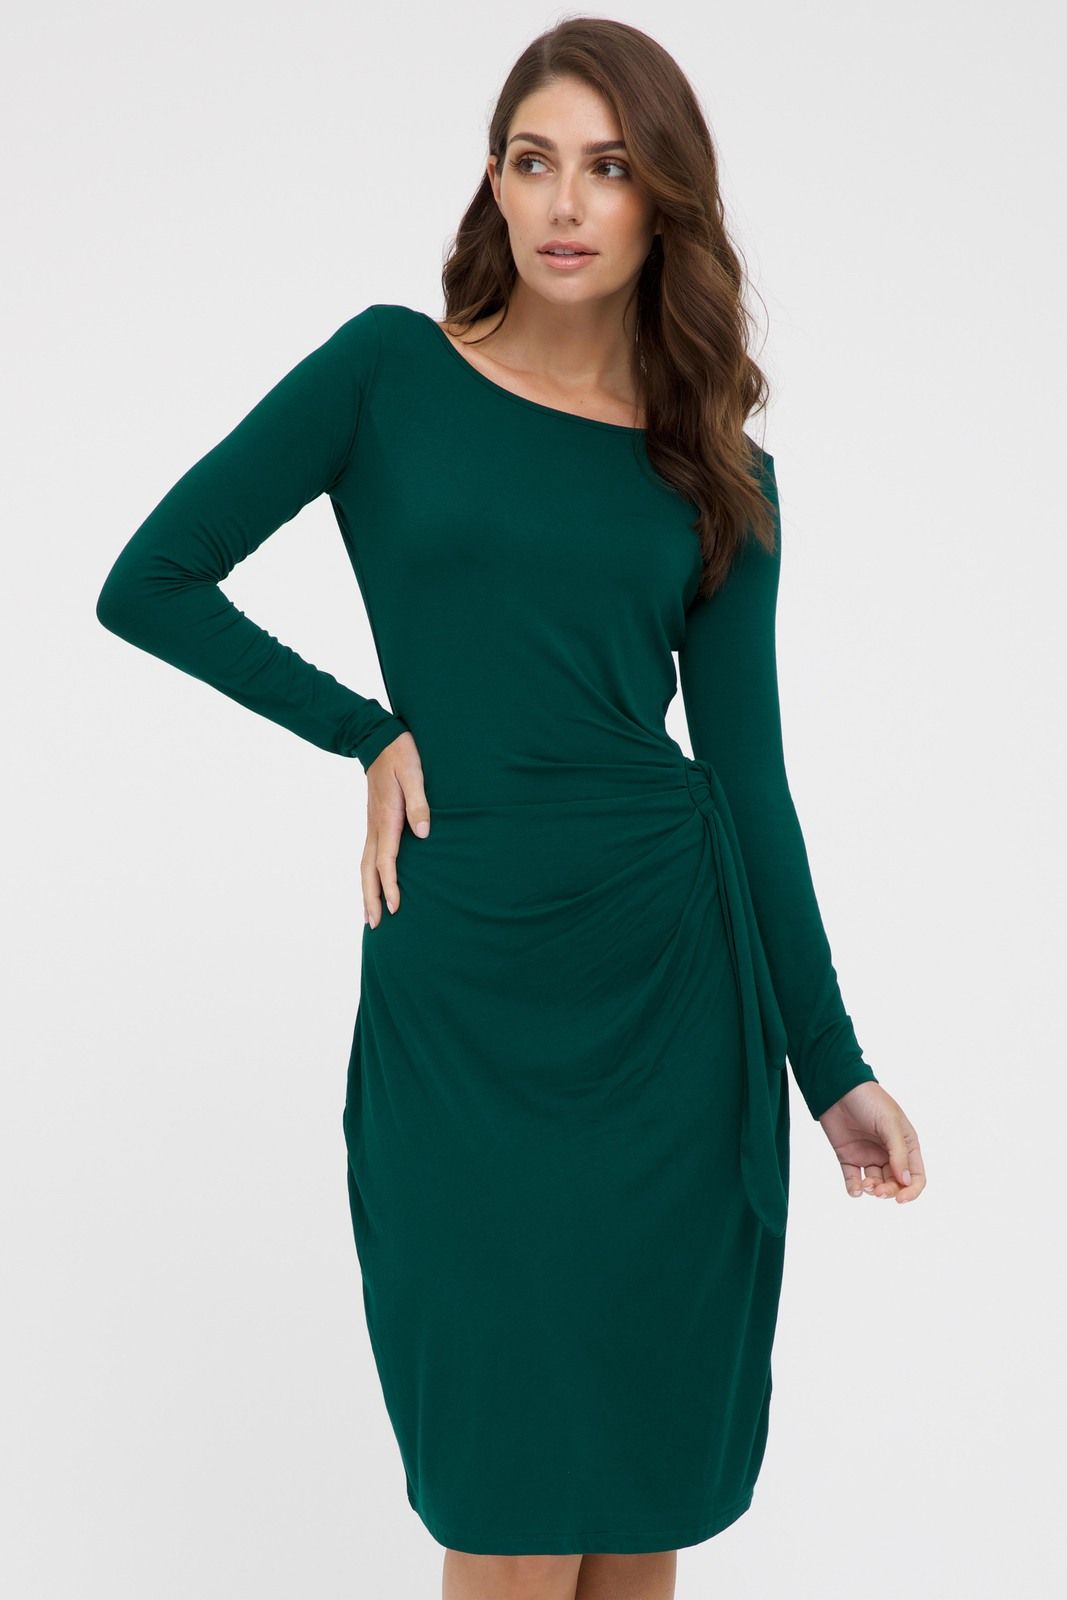 This Long Sleeve Fitted Dress In Dark Emerald Green Features An Elegant Wide Boat Neckline And A Line Shaped Skirt Long Sleeve Fitted Dress Shape Skirt Dresses [ 1600 x 1067 Pixel ]